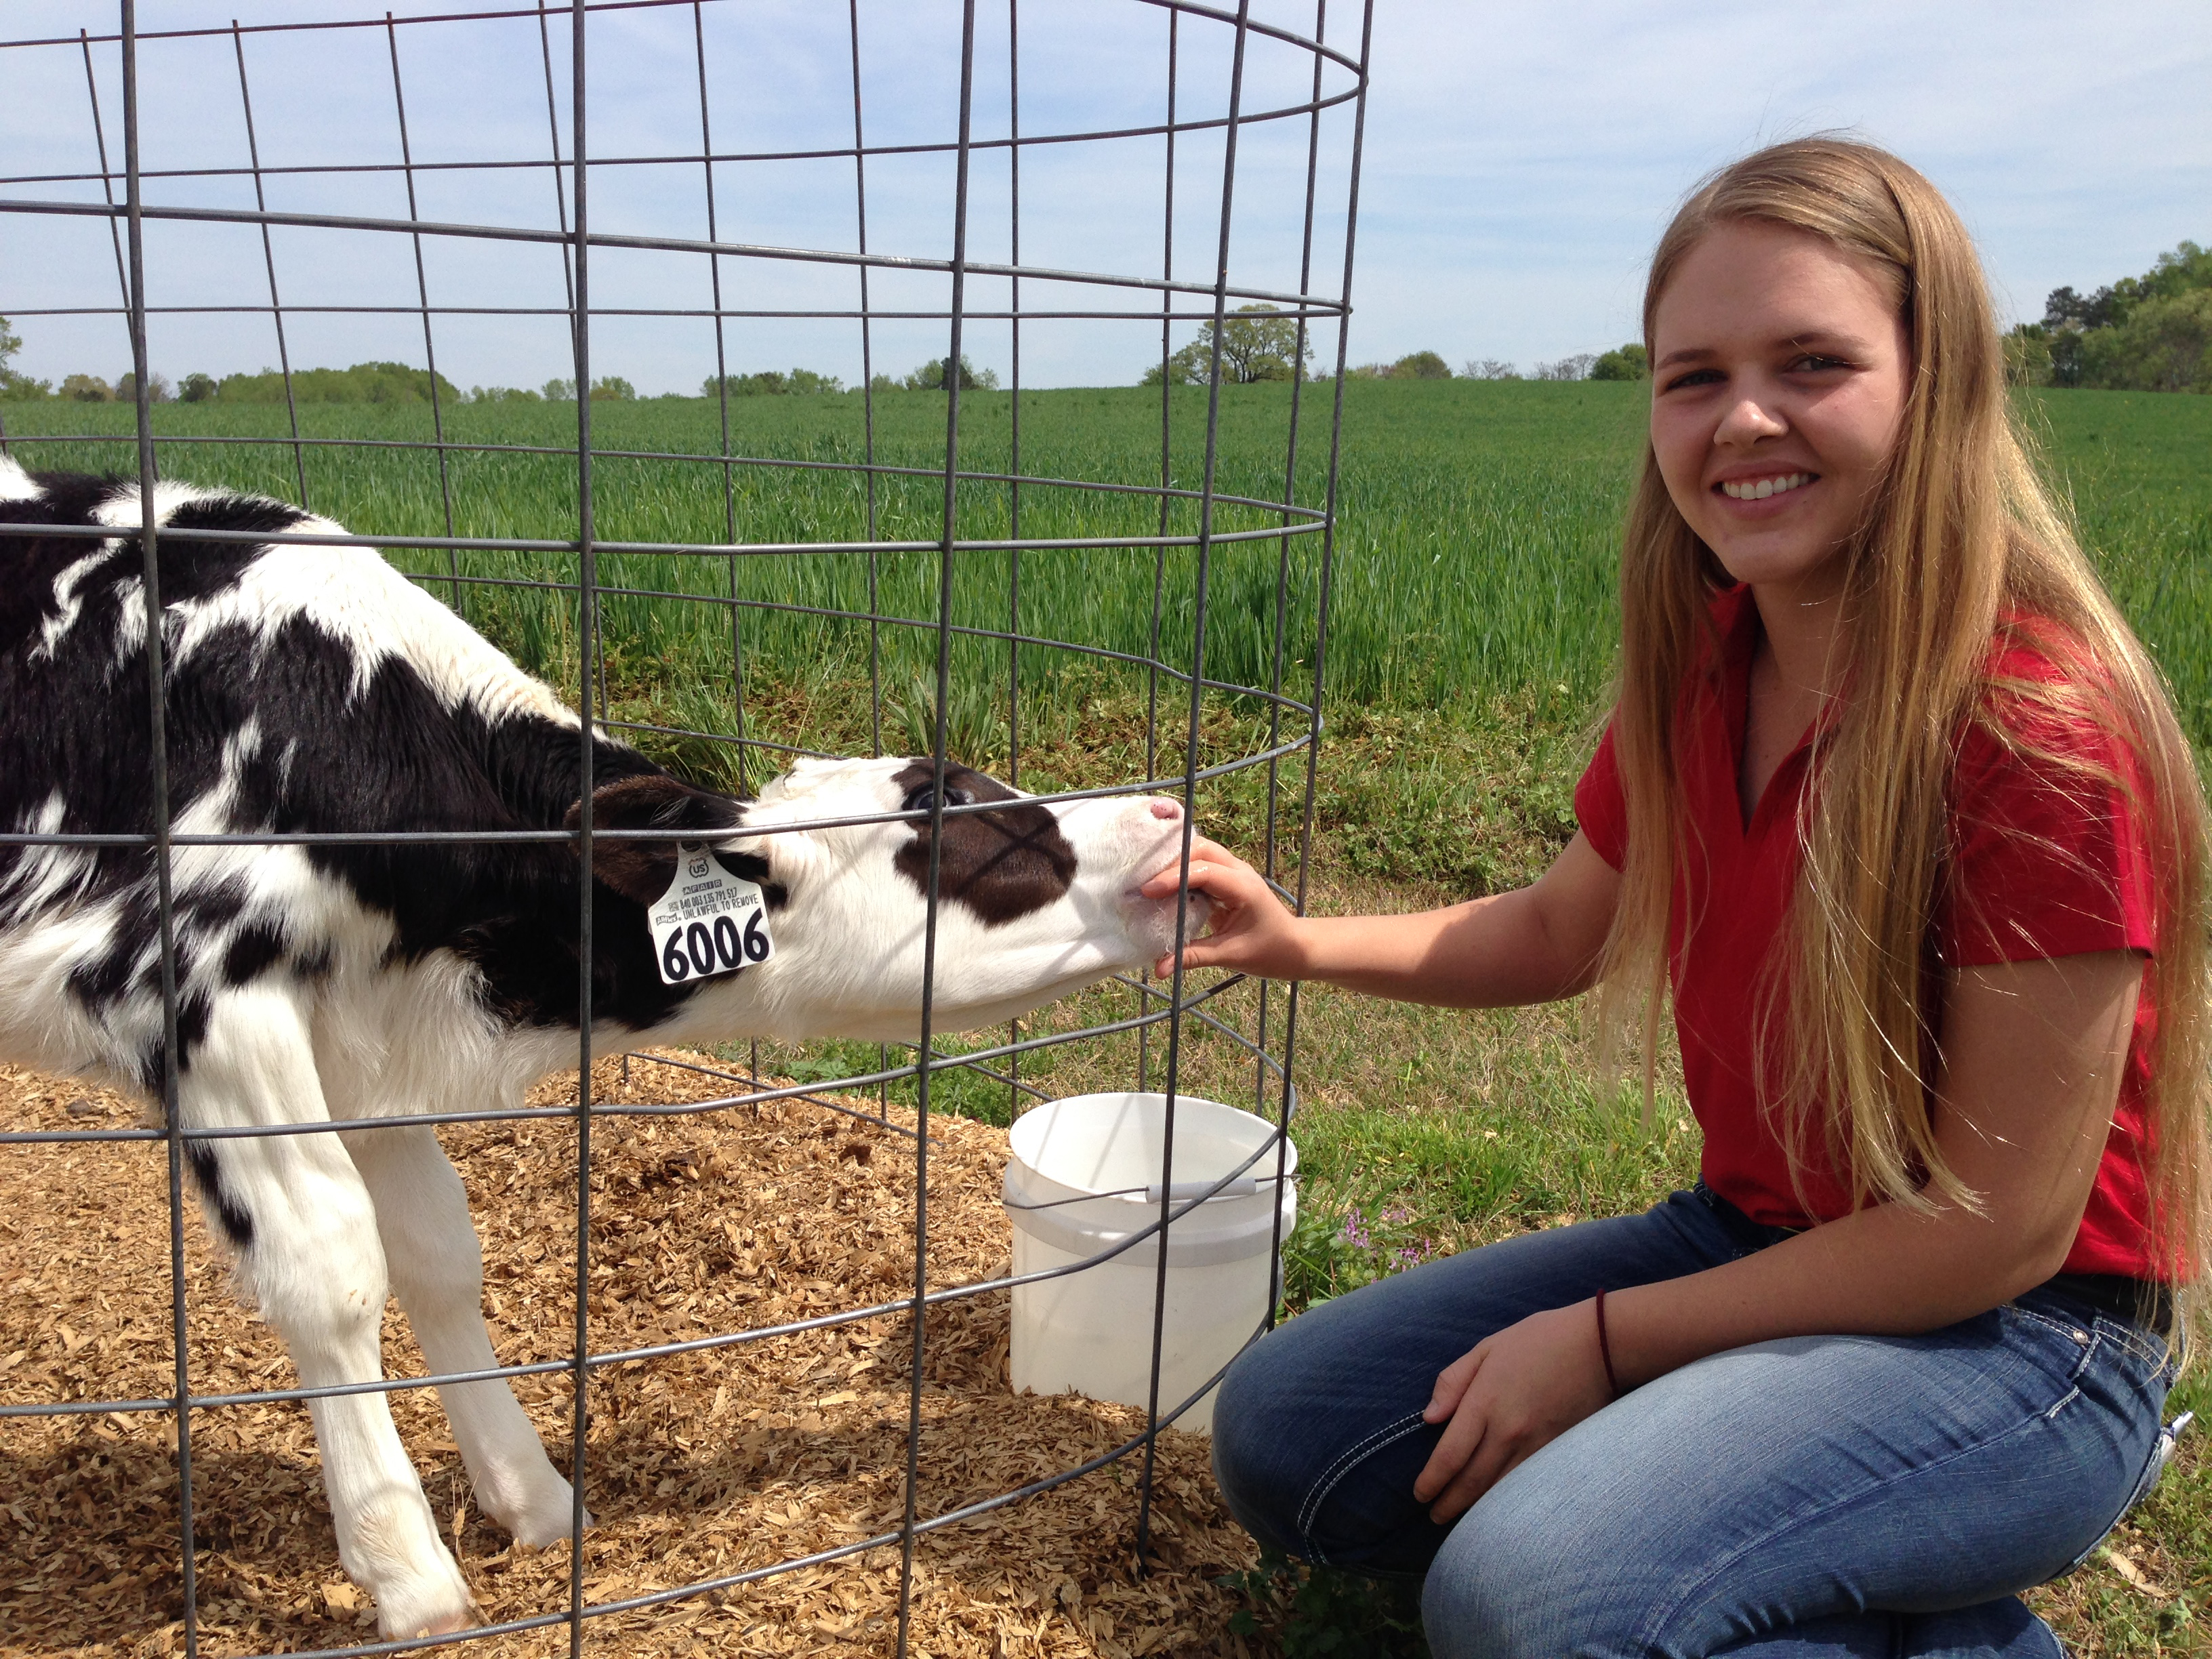 Kayla Alward, a Guyton Native majoring in animal and dairy science at the University of Georgia, has won the Student Employee of the Year Award from the Southern Association of Student Employment Administrators. Alward, who won the award for dedication to the calves at the UGA Teaching Dairy, is the first UGA student to win the award.